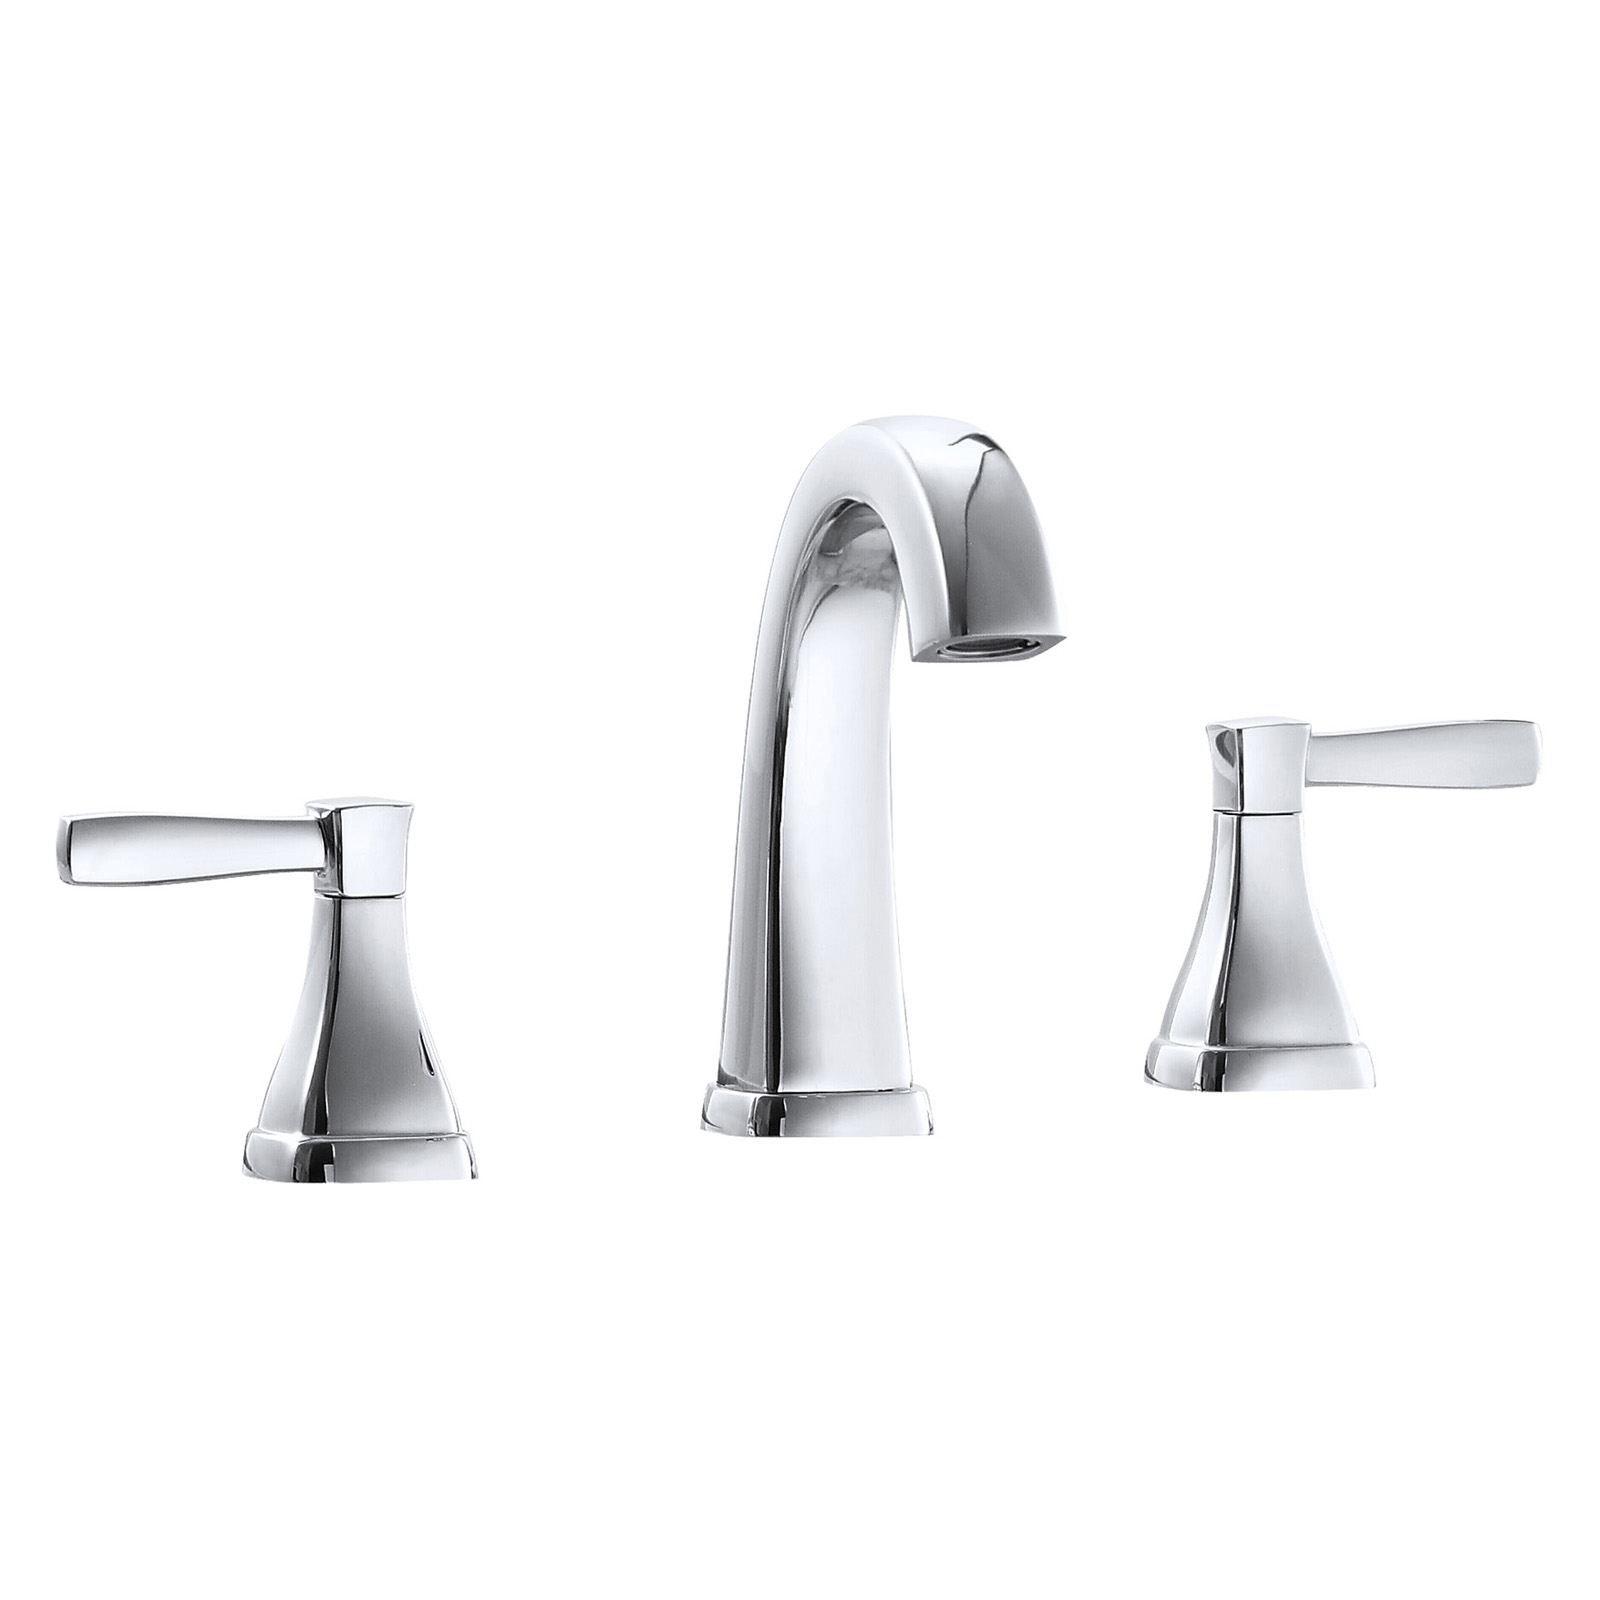 Borhn B52215 Ossimo 8 Lav Faucet Lever Handles Brushed Nickel